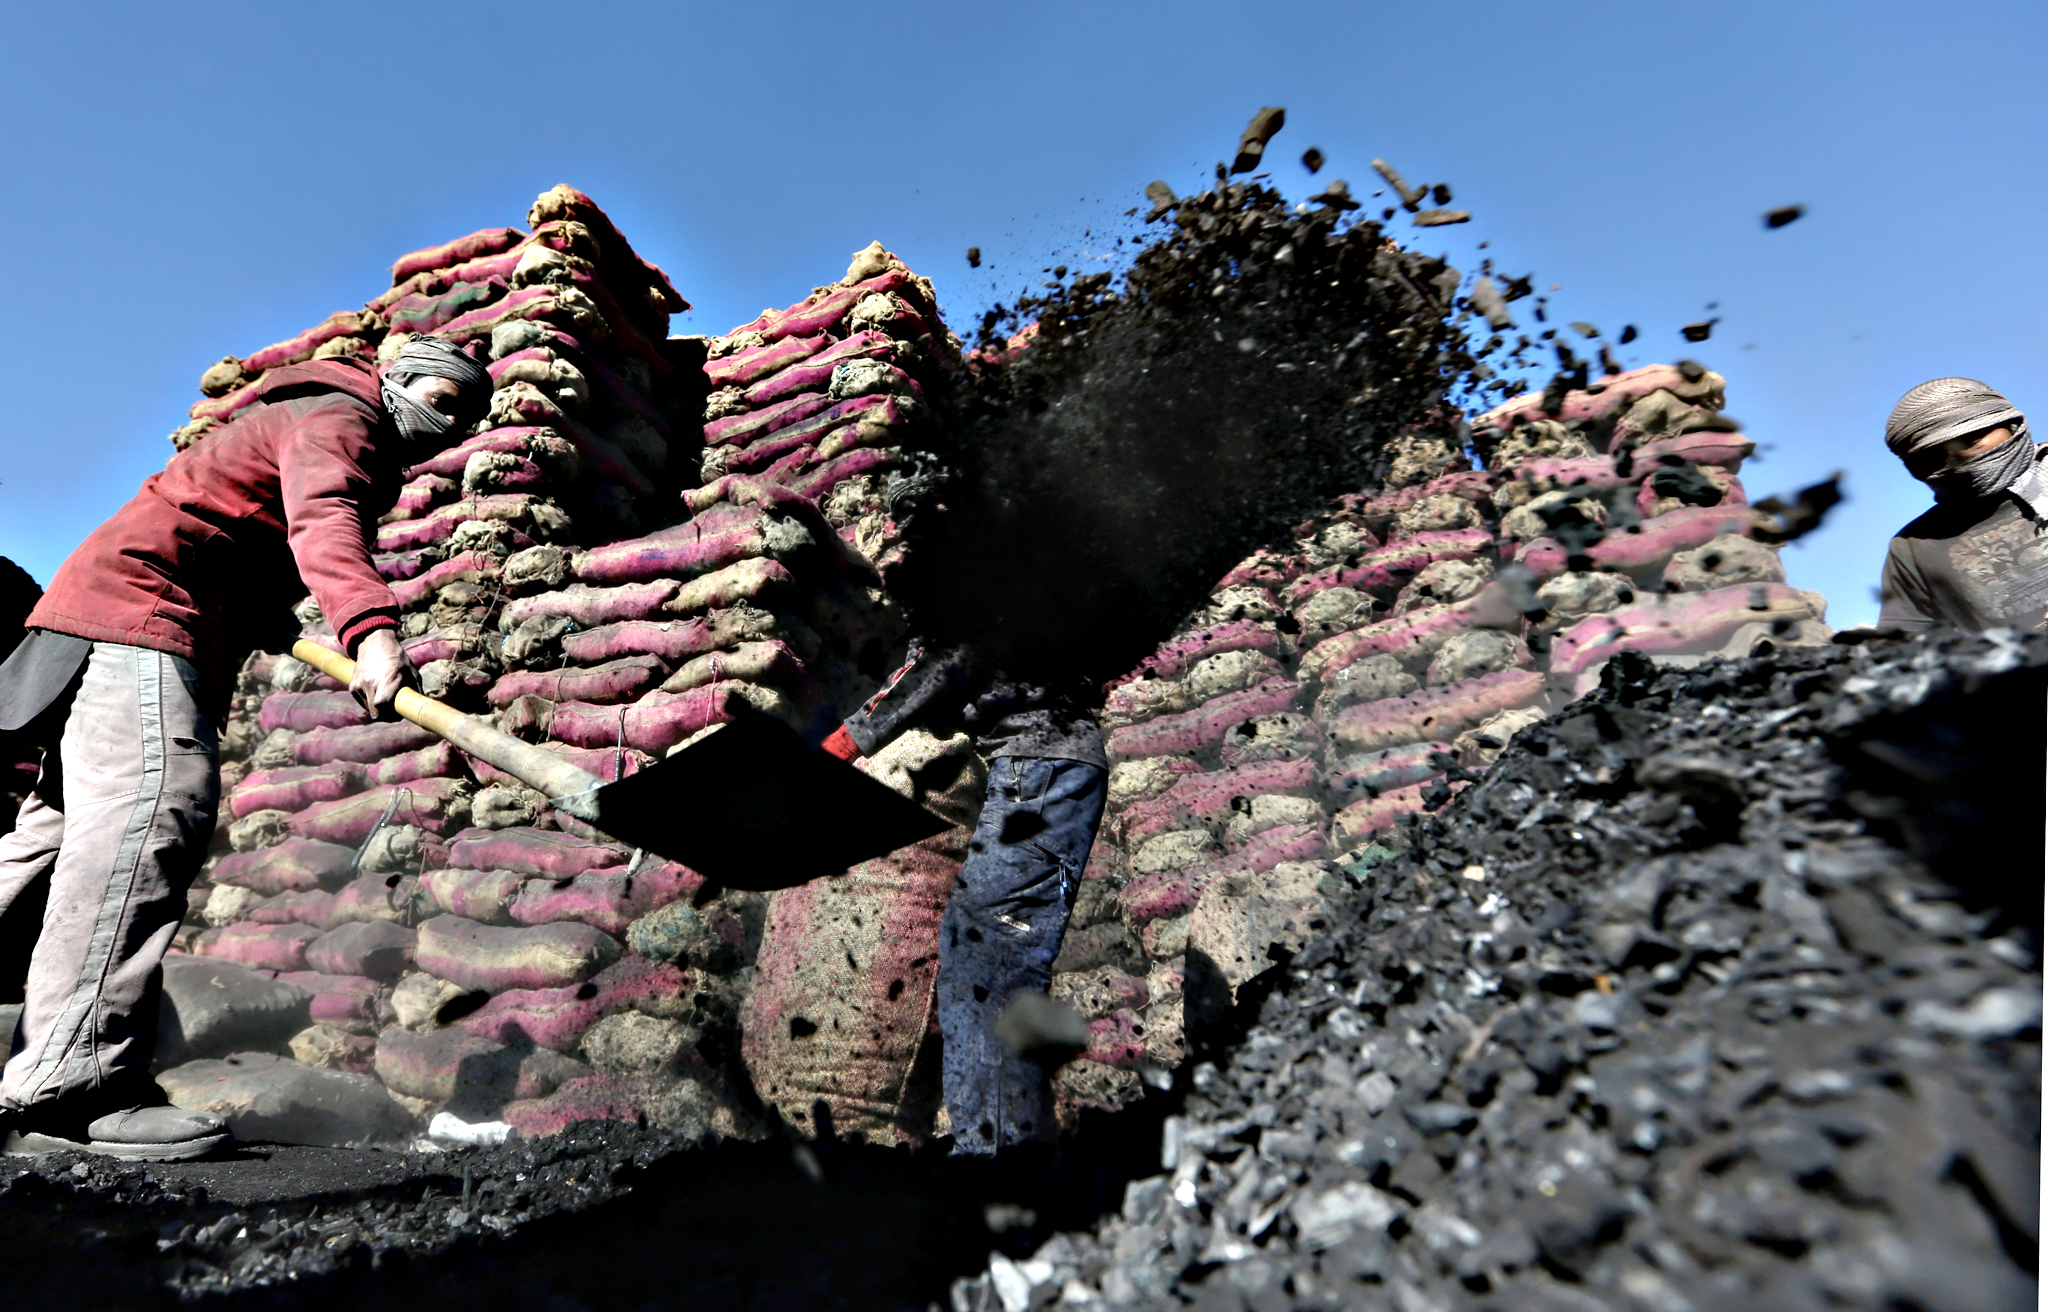 Afghan laborers work at a charcoal shop in Kabul, Afghanistan, Monday, Nov. 16, 2015. In the winter, prices of wood and charcoal rise among all other necessities for Afghans.